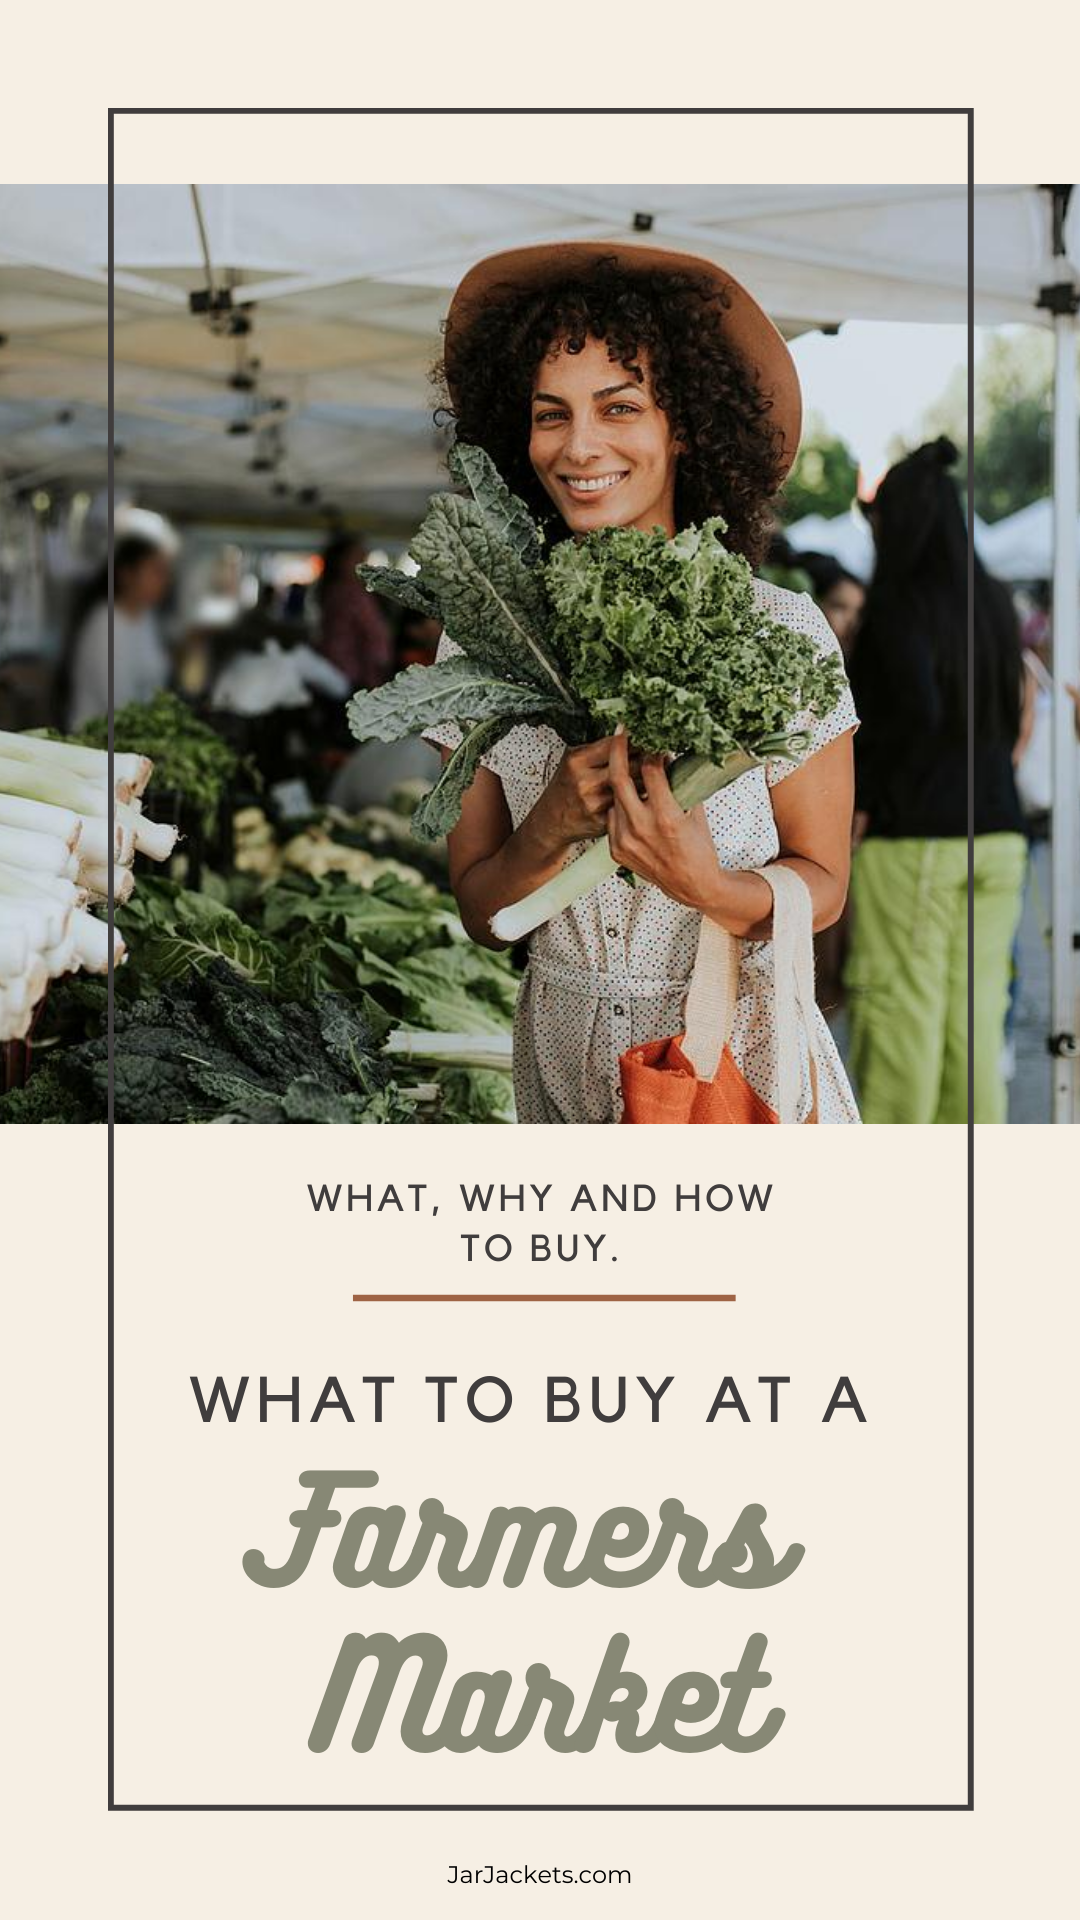 A smiling woman holds up a bunch of kale at a farmers market | What, Why, and How to Buy. What to Buy at a Farmers Market.